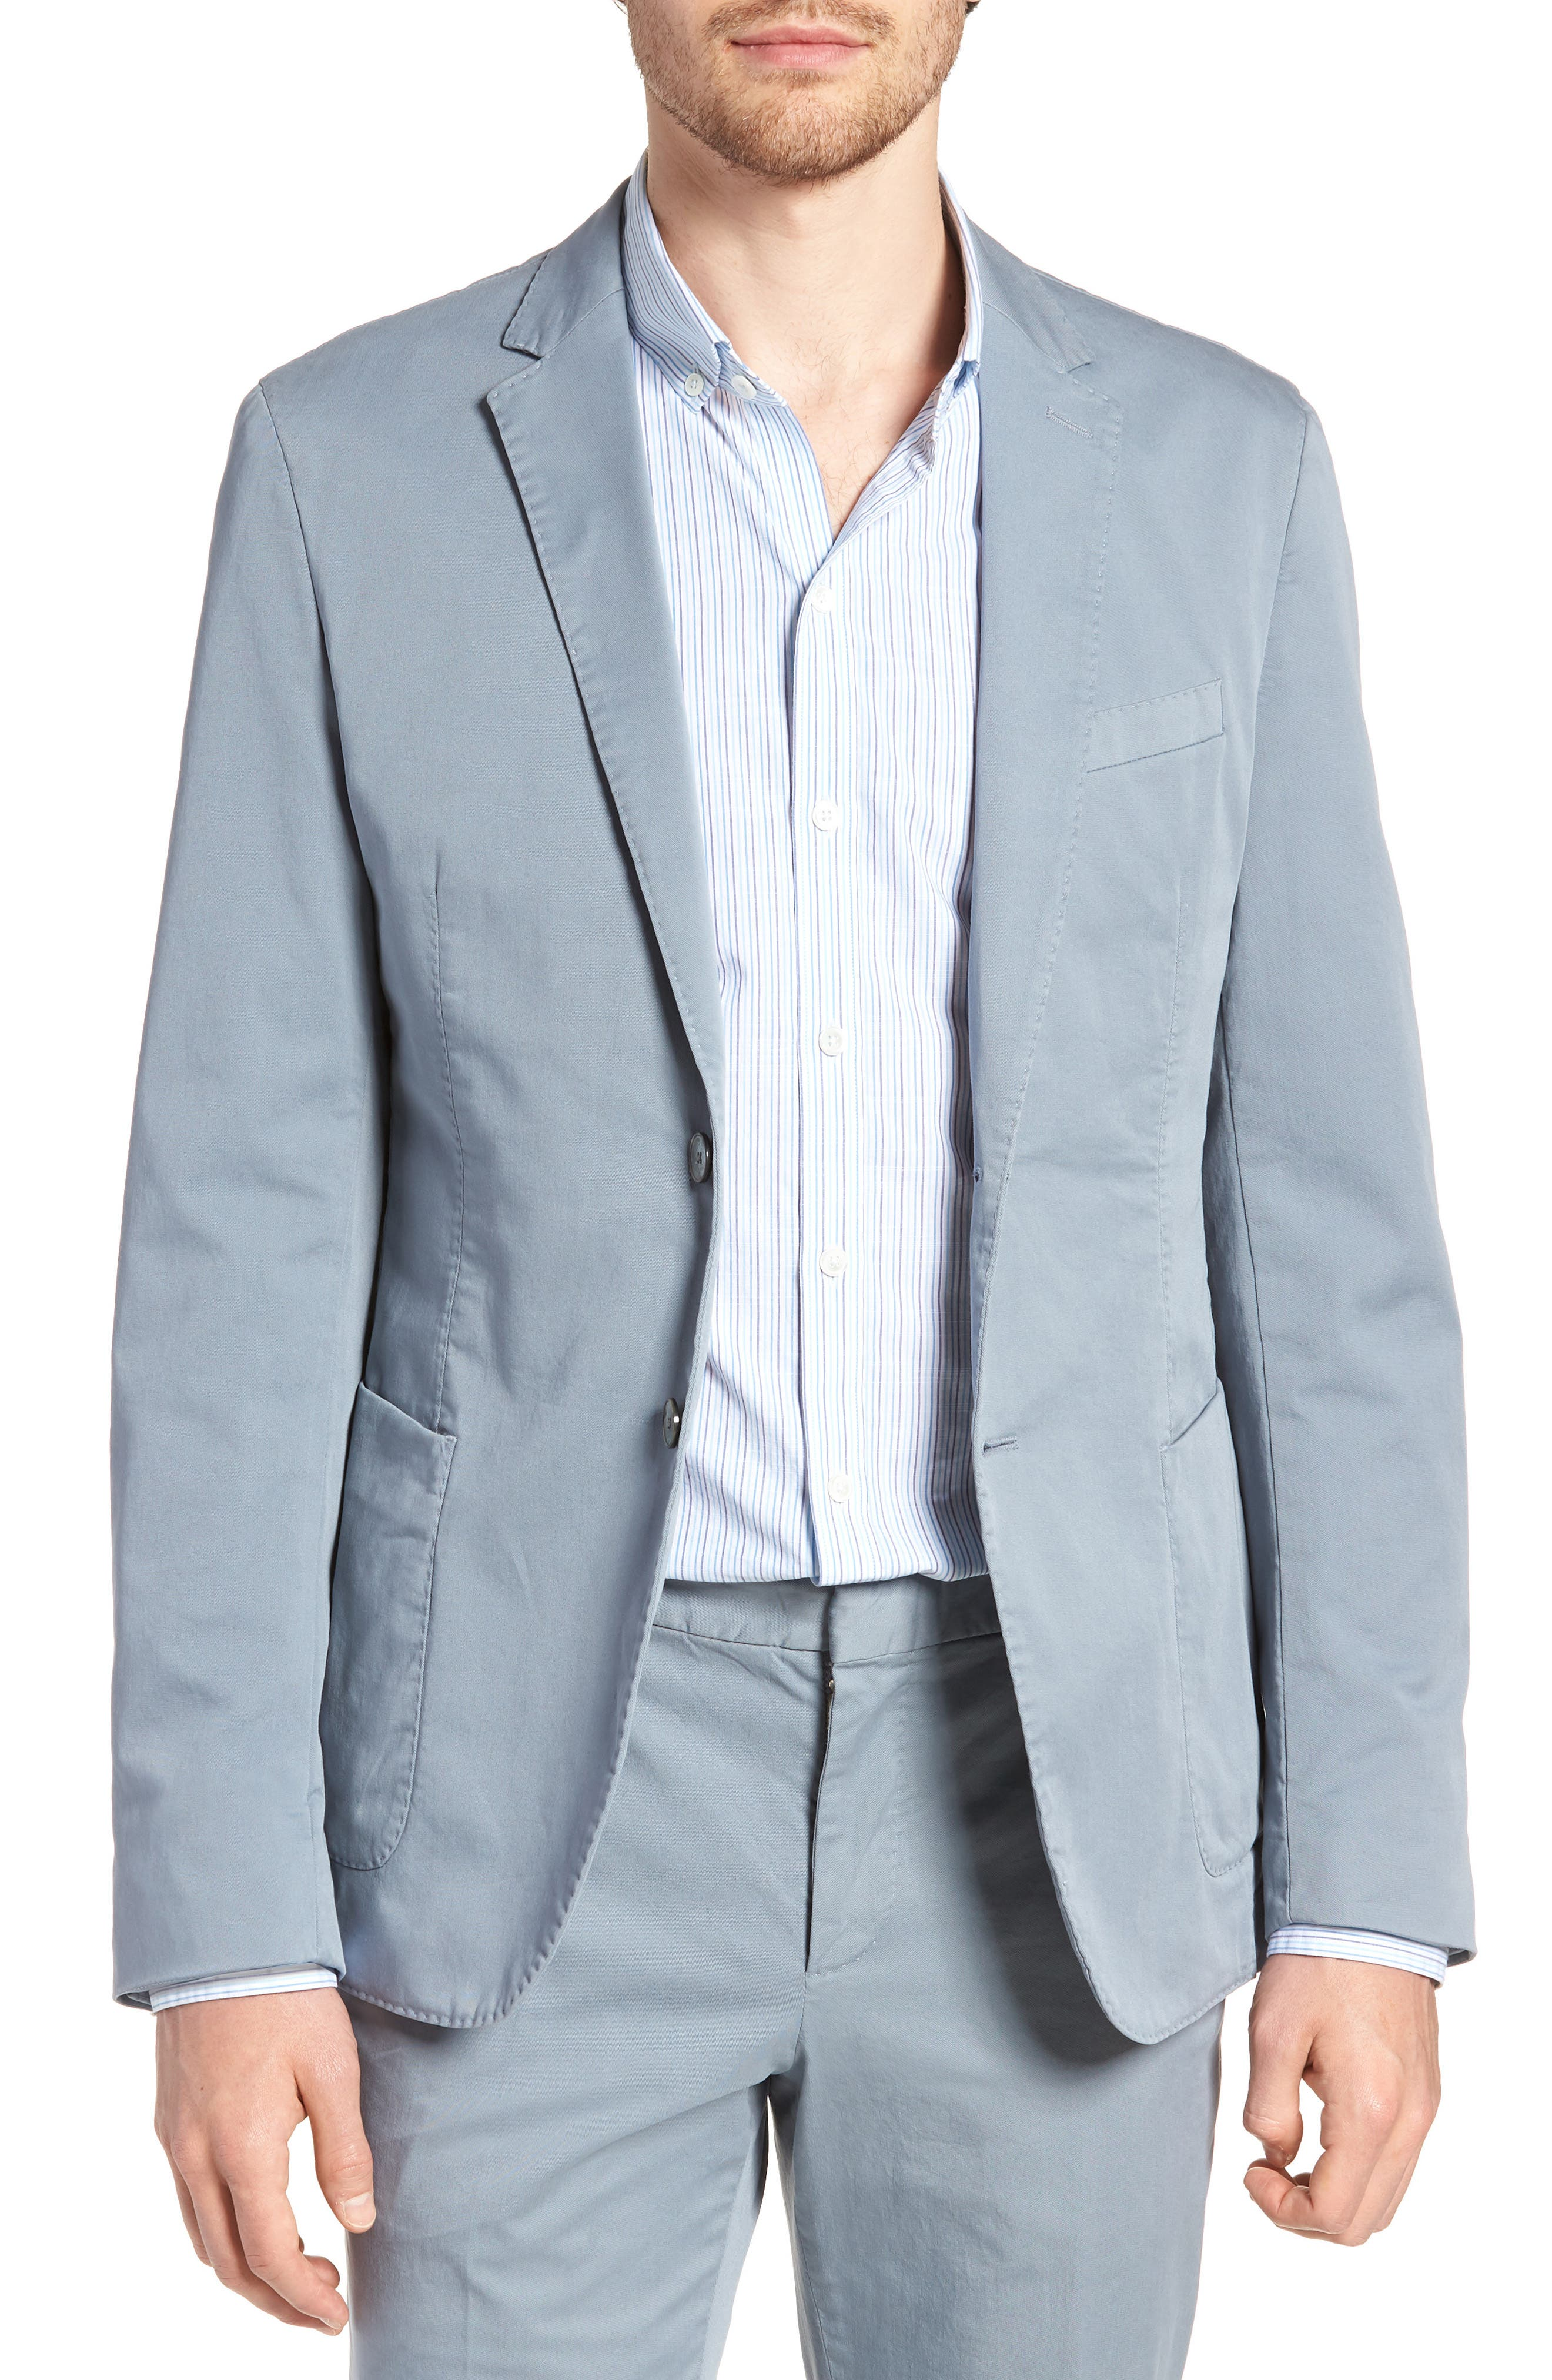 Hanry-D Trim Fit Stretch Cotton Blazer,                         Main,                         color, Blue